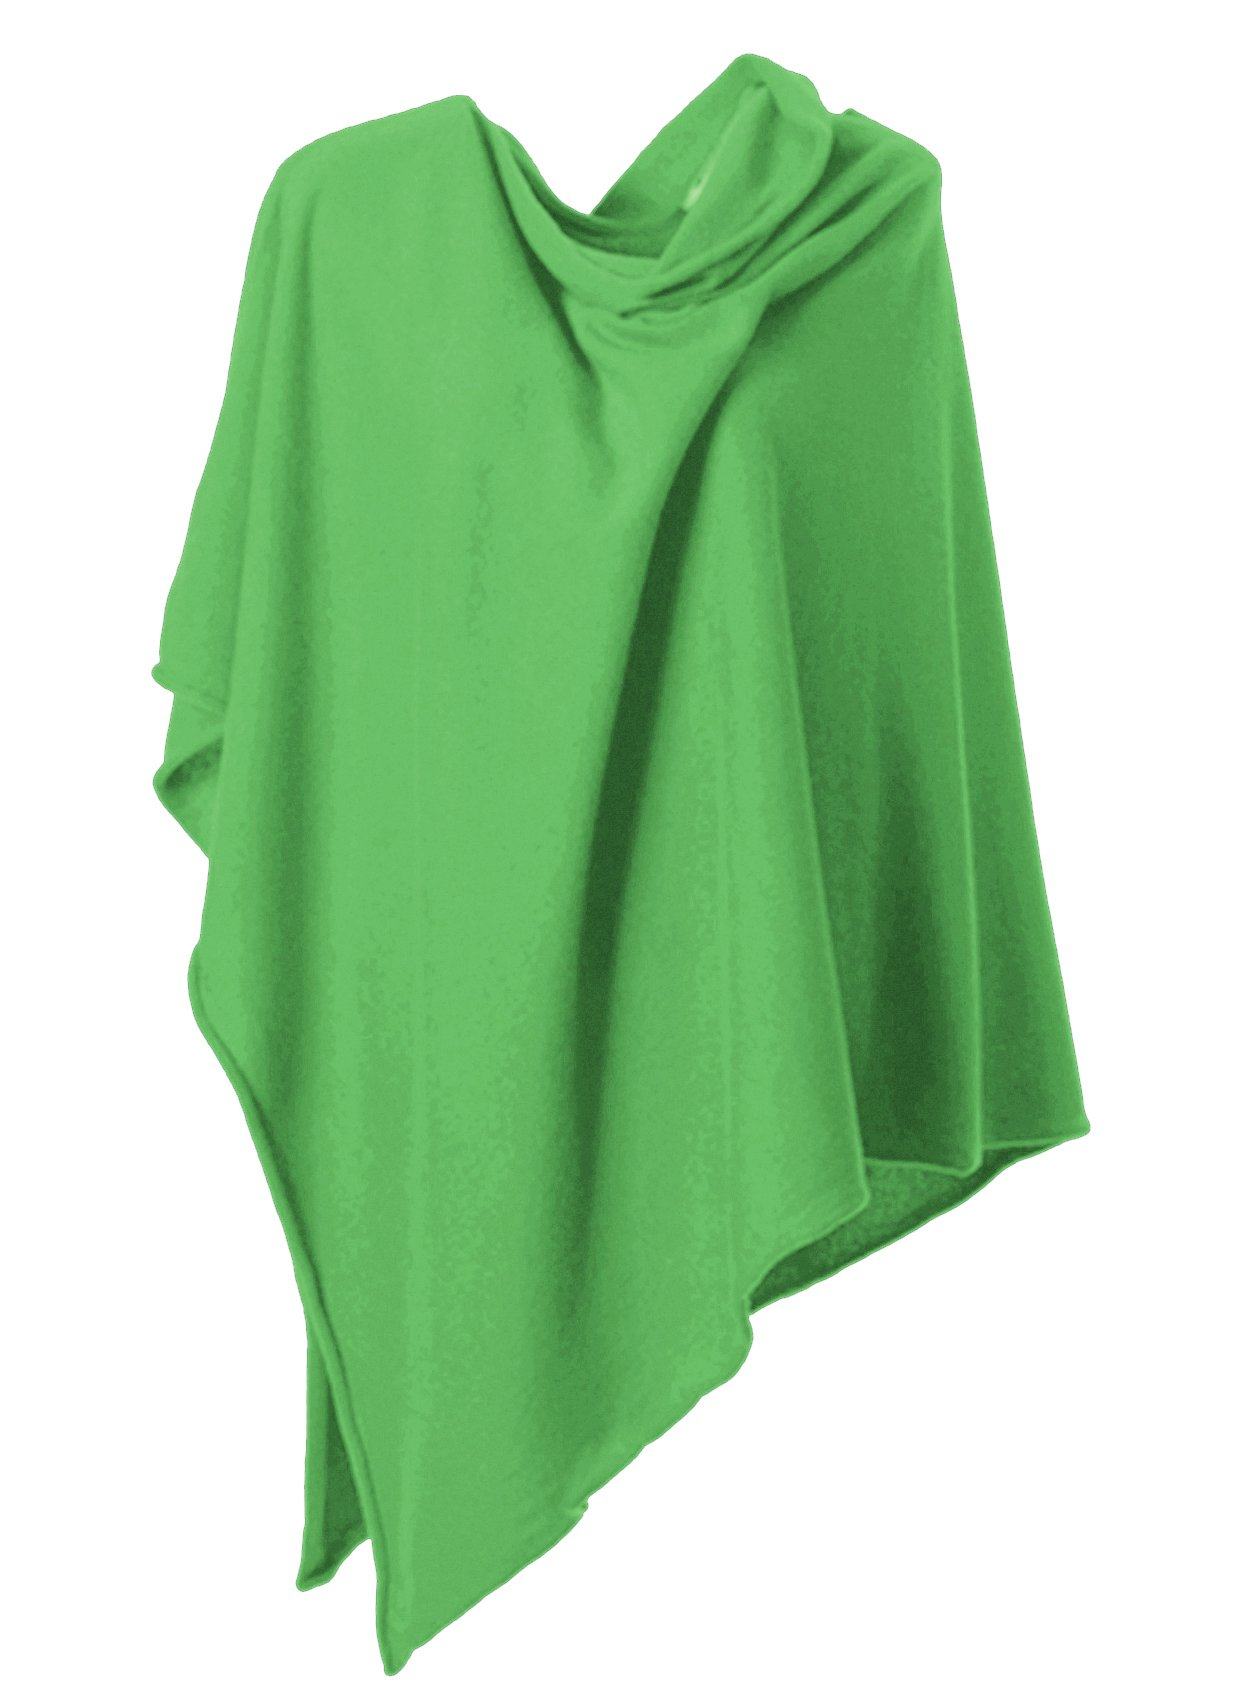 Anna Kristine Asymmetrical 100% Cashmere Draped Poncho Topper - Kelly Green